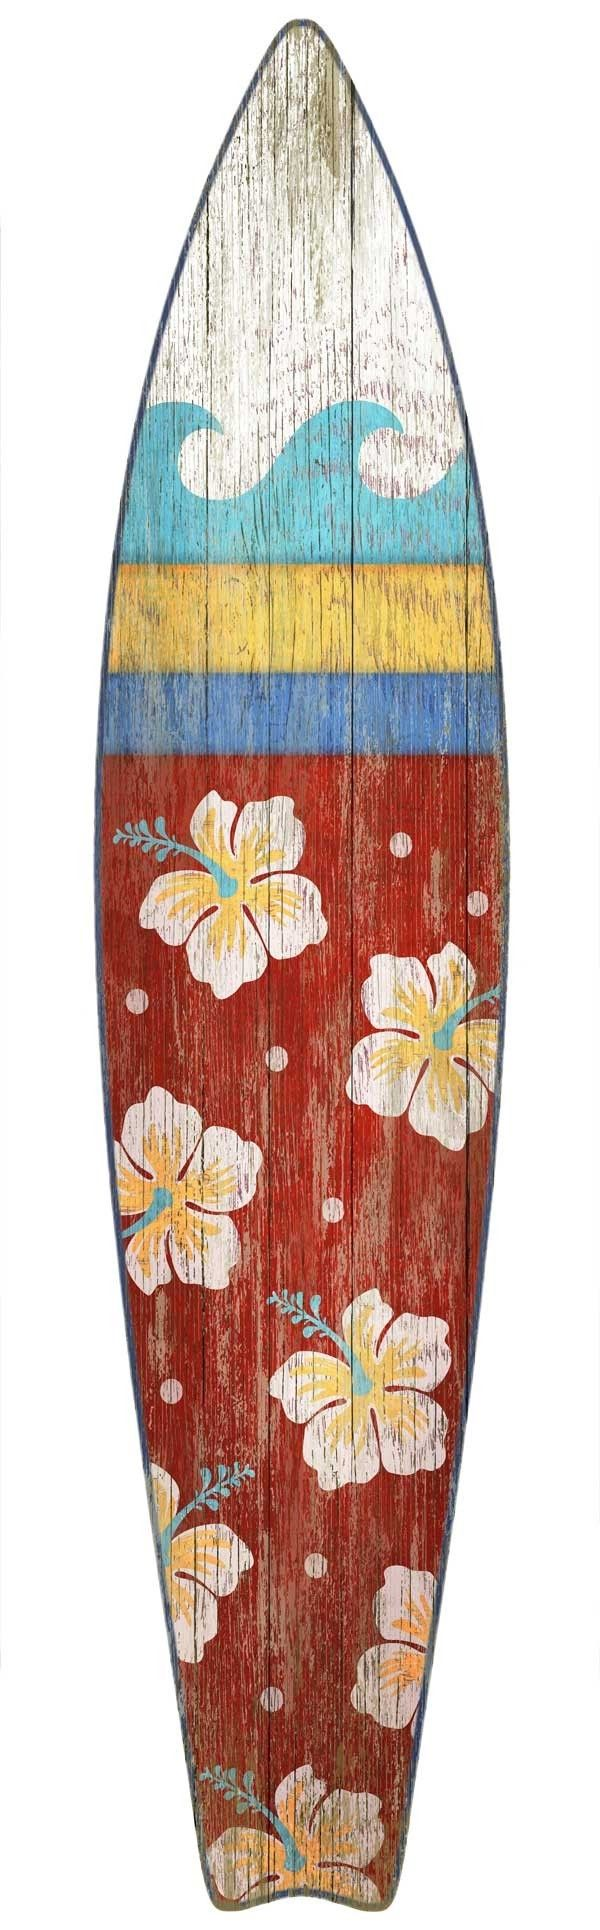 Aloha! Hawaiian Style Surf Board Wall Art from Suzanne Nicoll